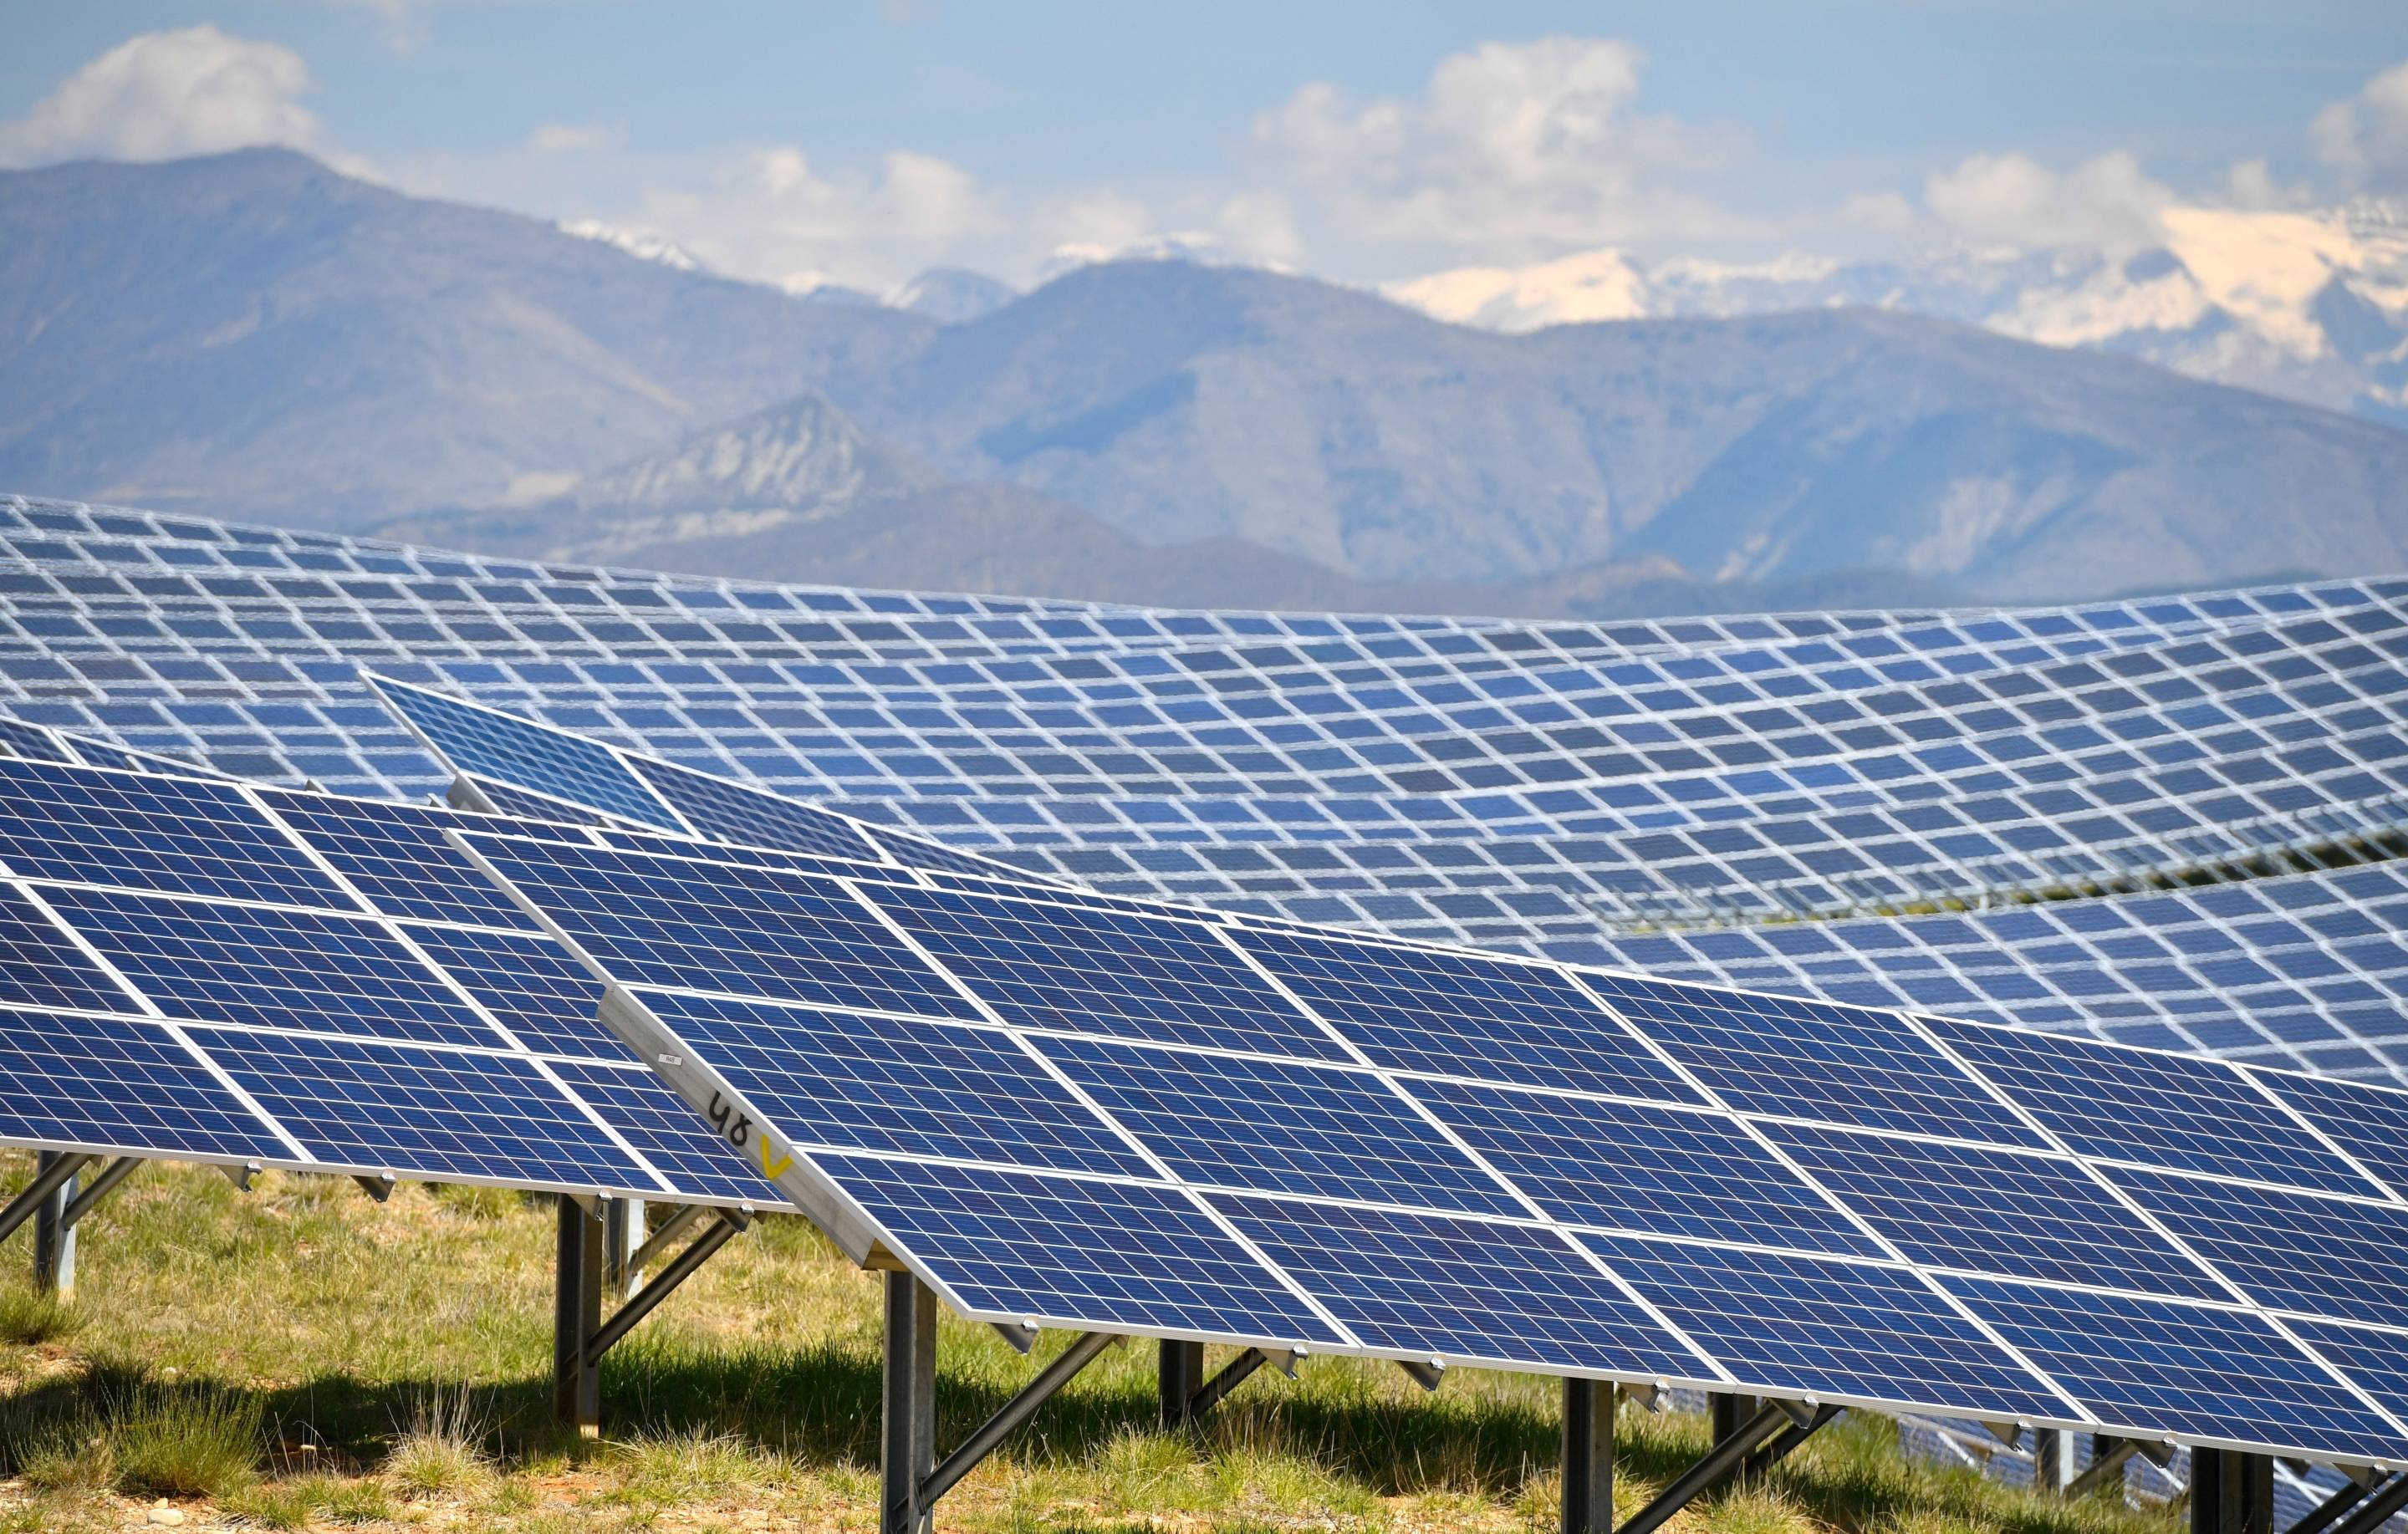 FRANCE-ENERGY-SOLAR-PHOTOVOLTAICS-ENVIRONMENT